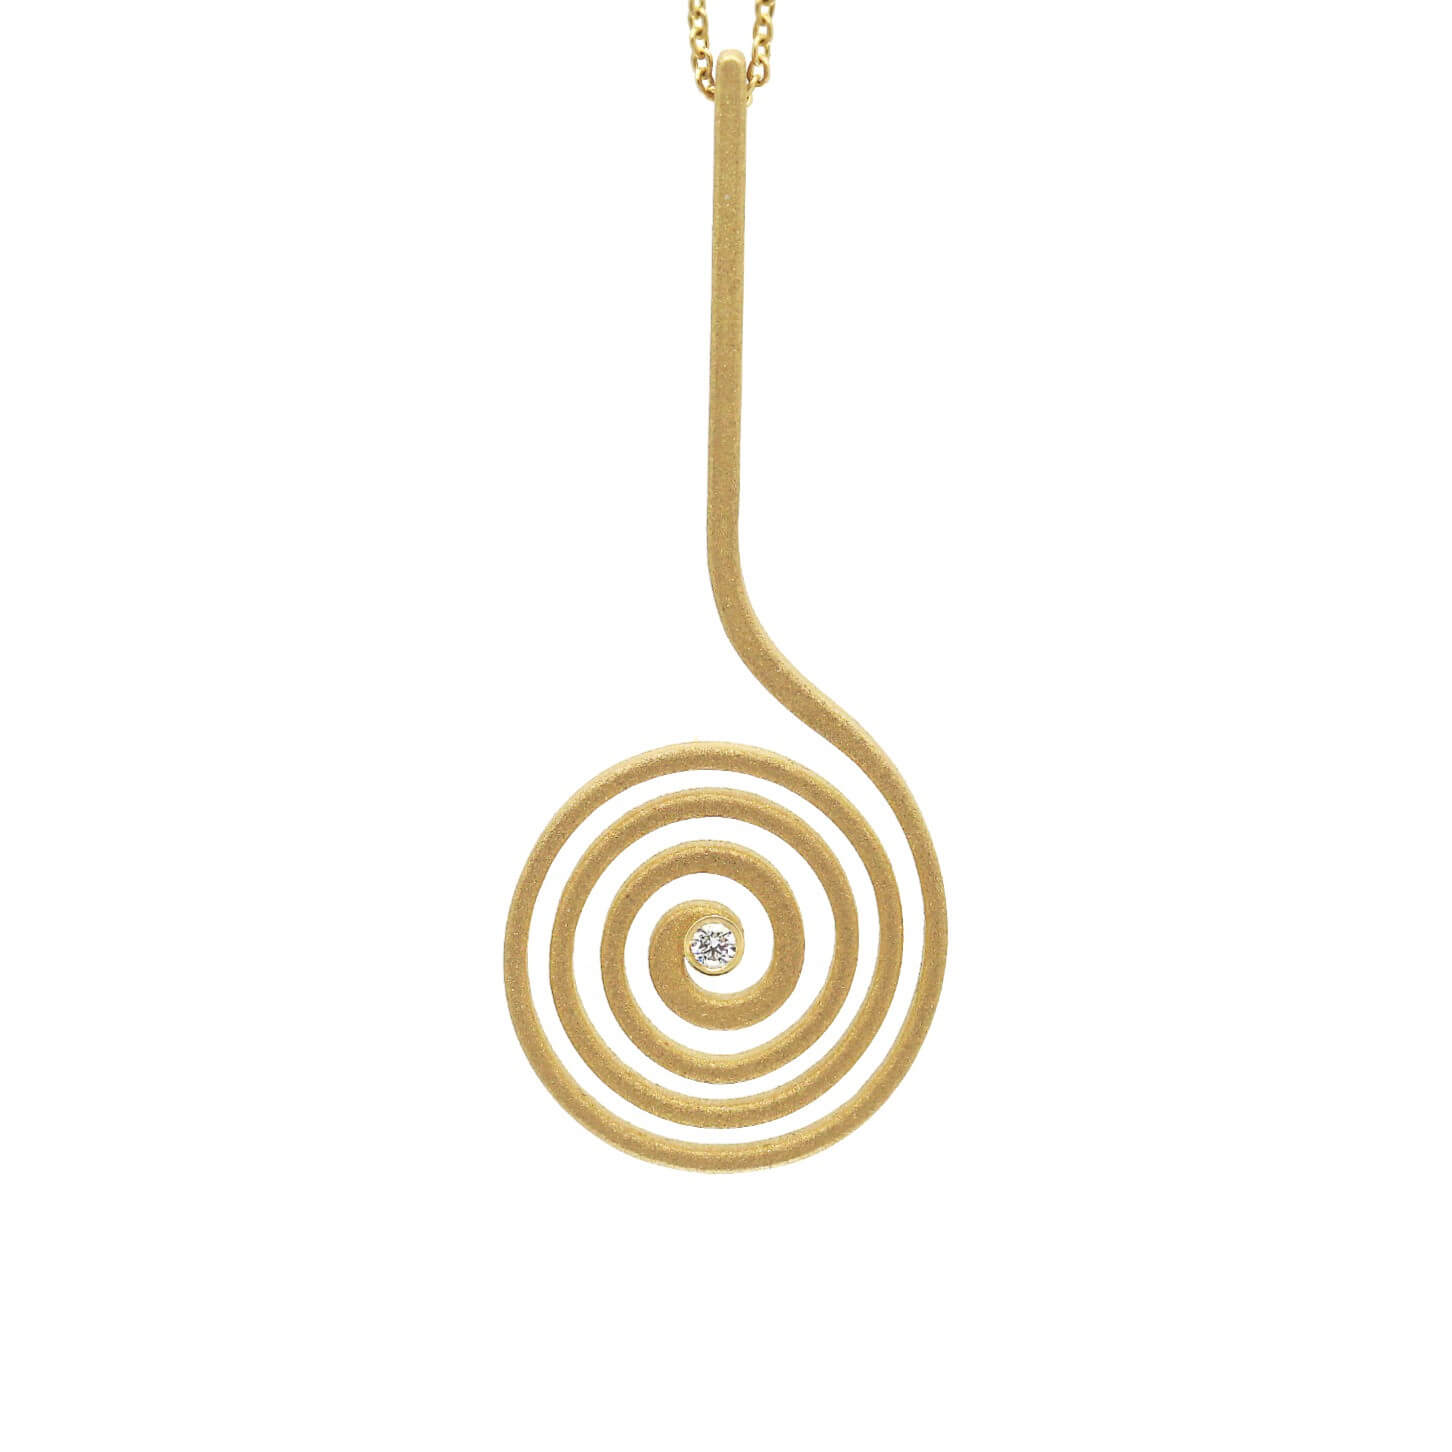 Spirale boucle collier or diamant